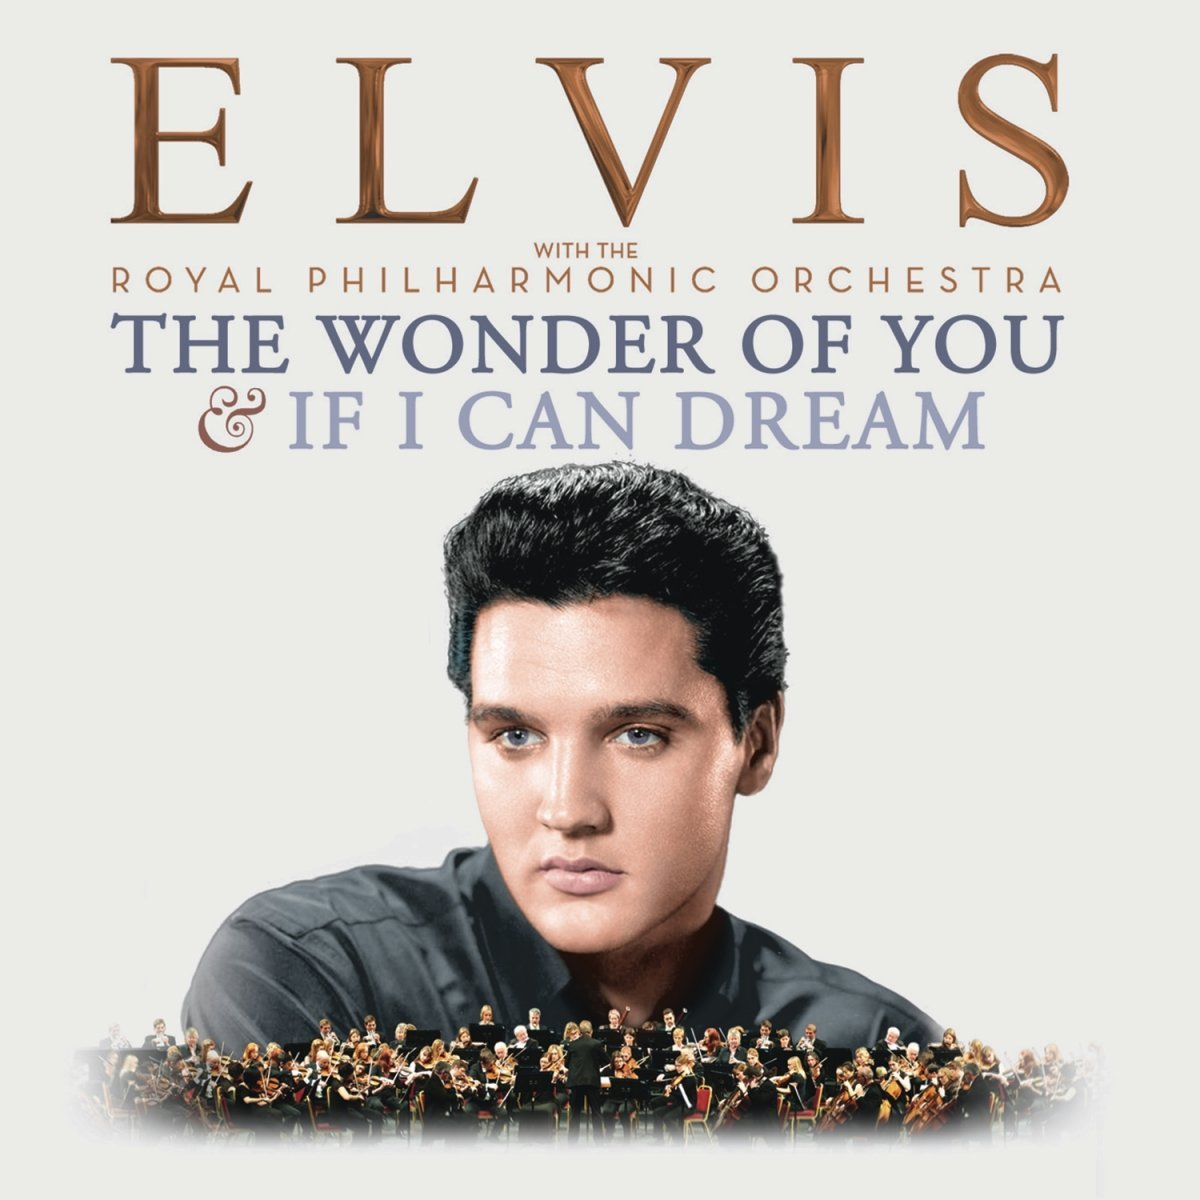 The Royal Philharmonic Orchestra Goes To The Bathroom: The Wonder Of You & If I Can Dream: Elvis With The Royal